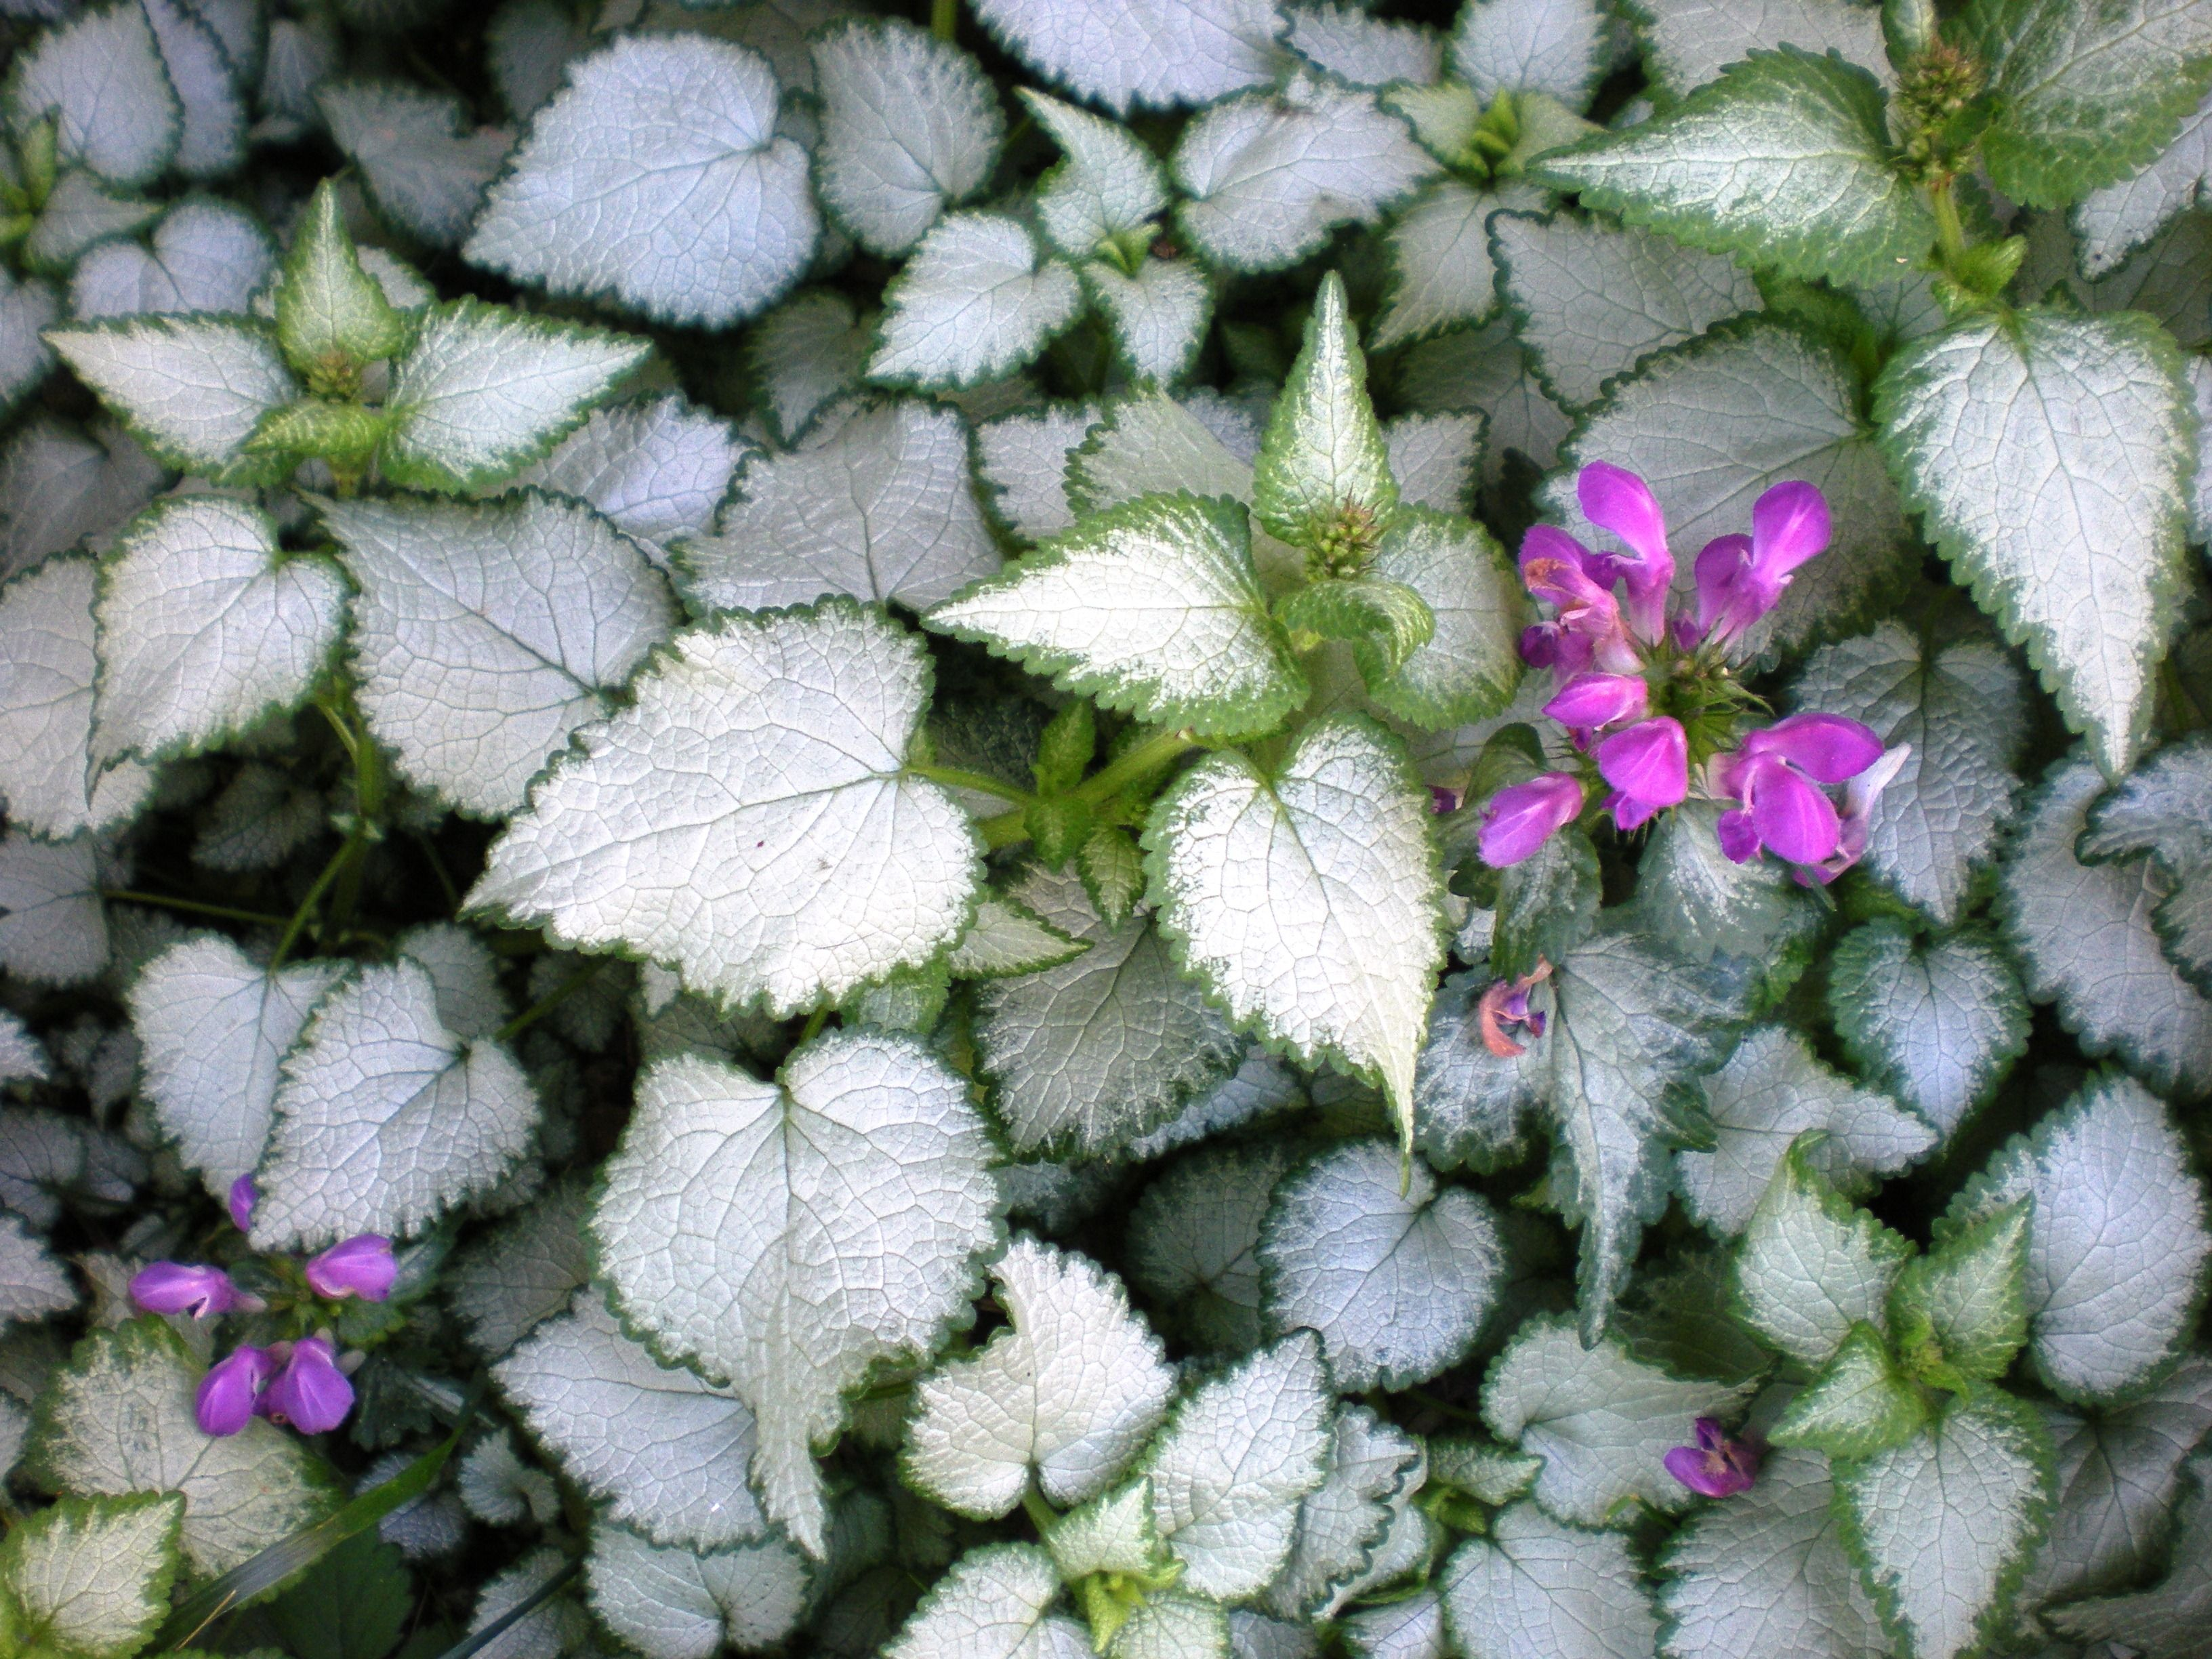 How to plant ground cover for shady areas - Beacon Silver Lamium Perennial Ground Cover For The Shade